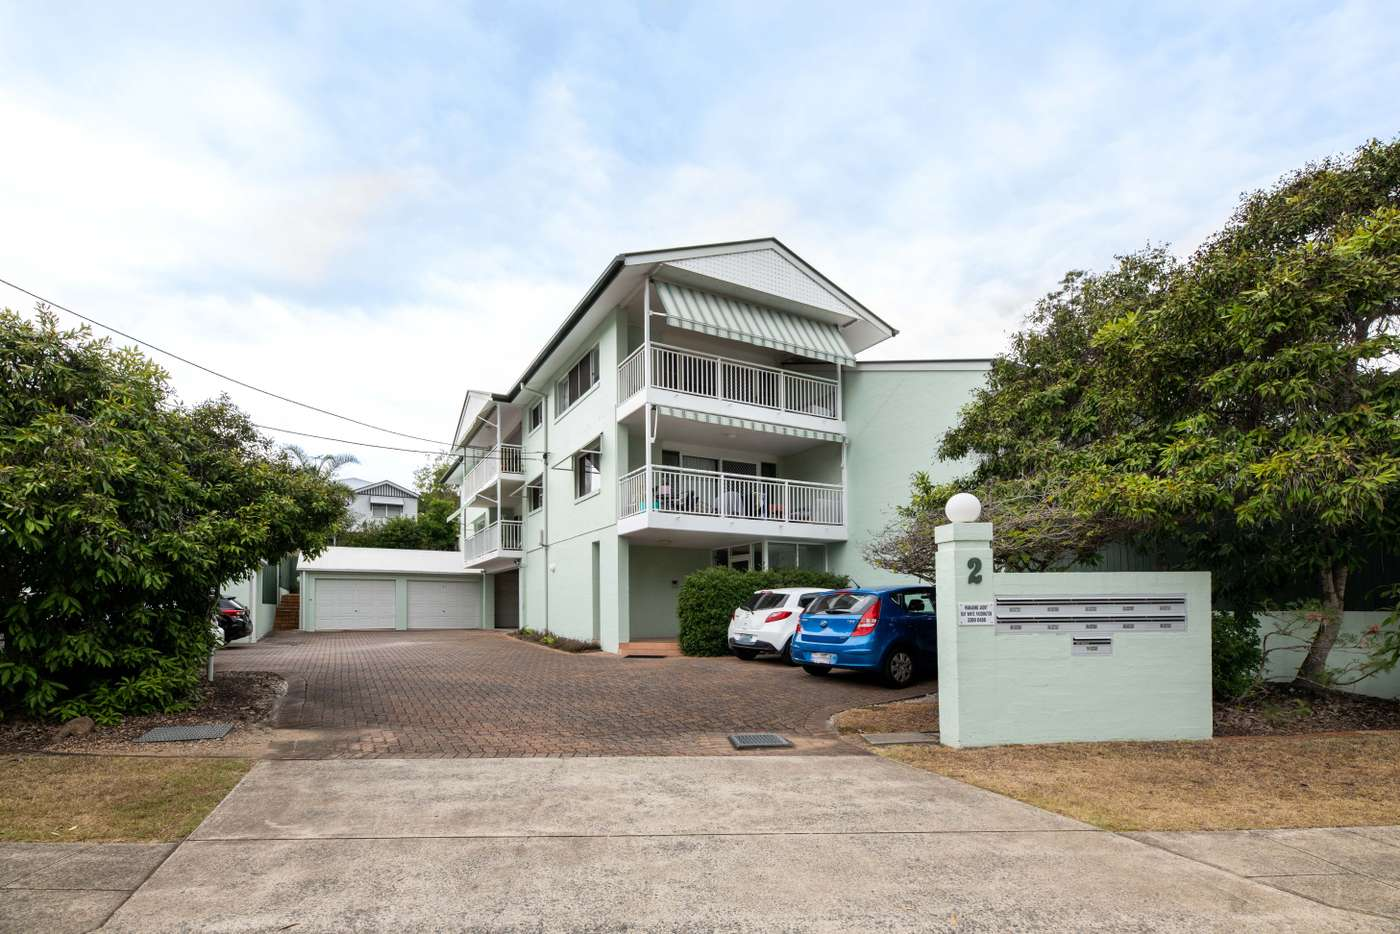 Main view of Homely townhouse listing, 2/2 Hetherington Street, Herston QLD 4006